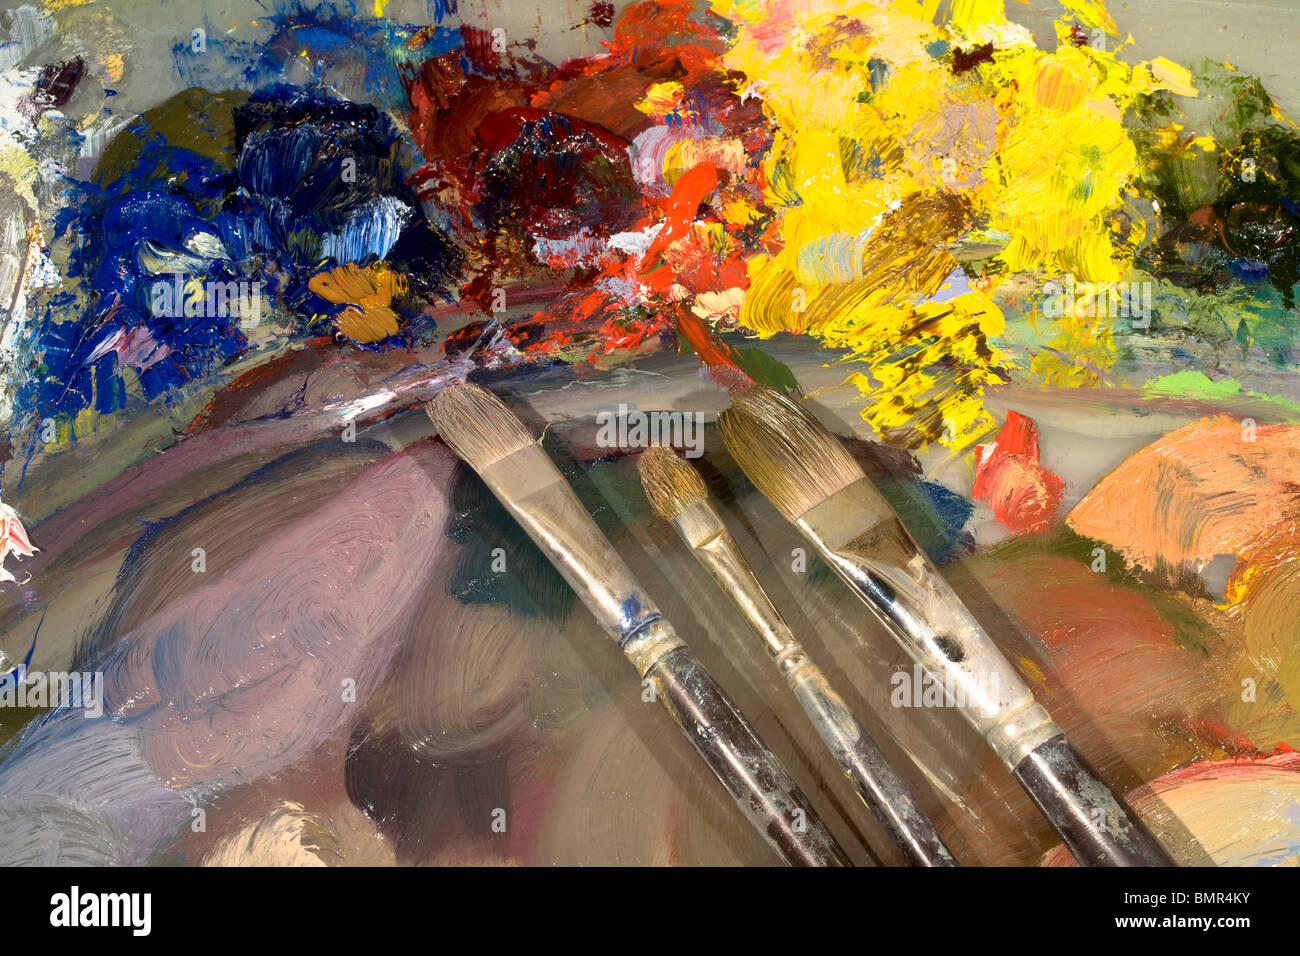 Oil paints on an artist's palette. Note bright colors for emphasis (top) and neutral colors (bottom) for backgrounds. - Stock Image